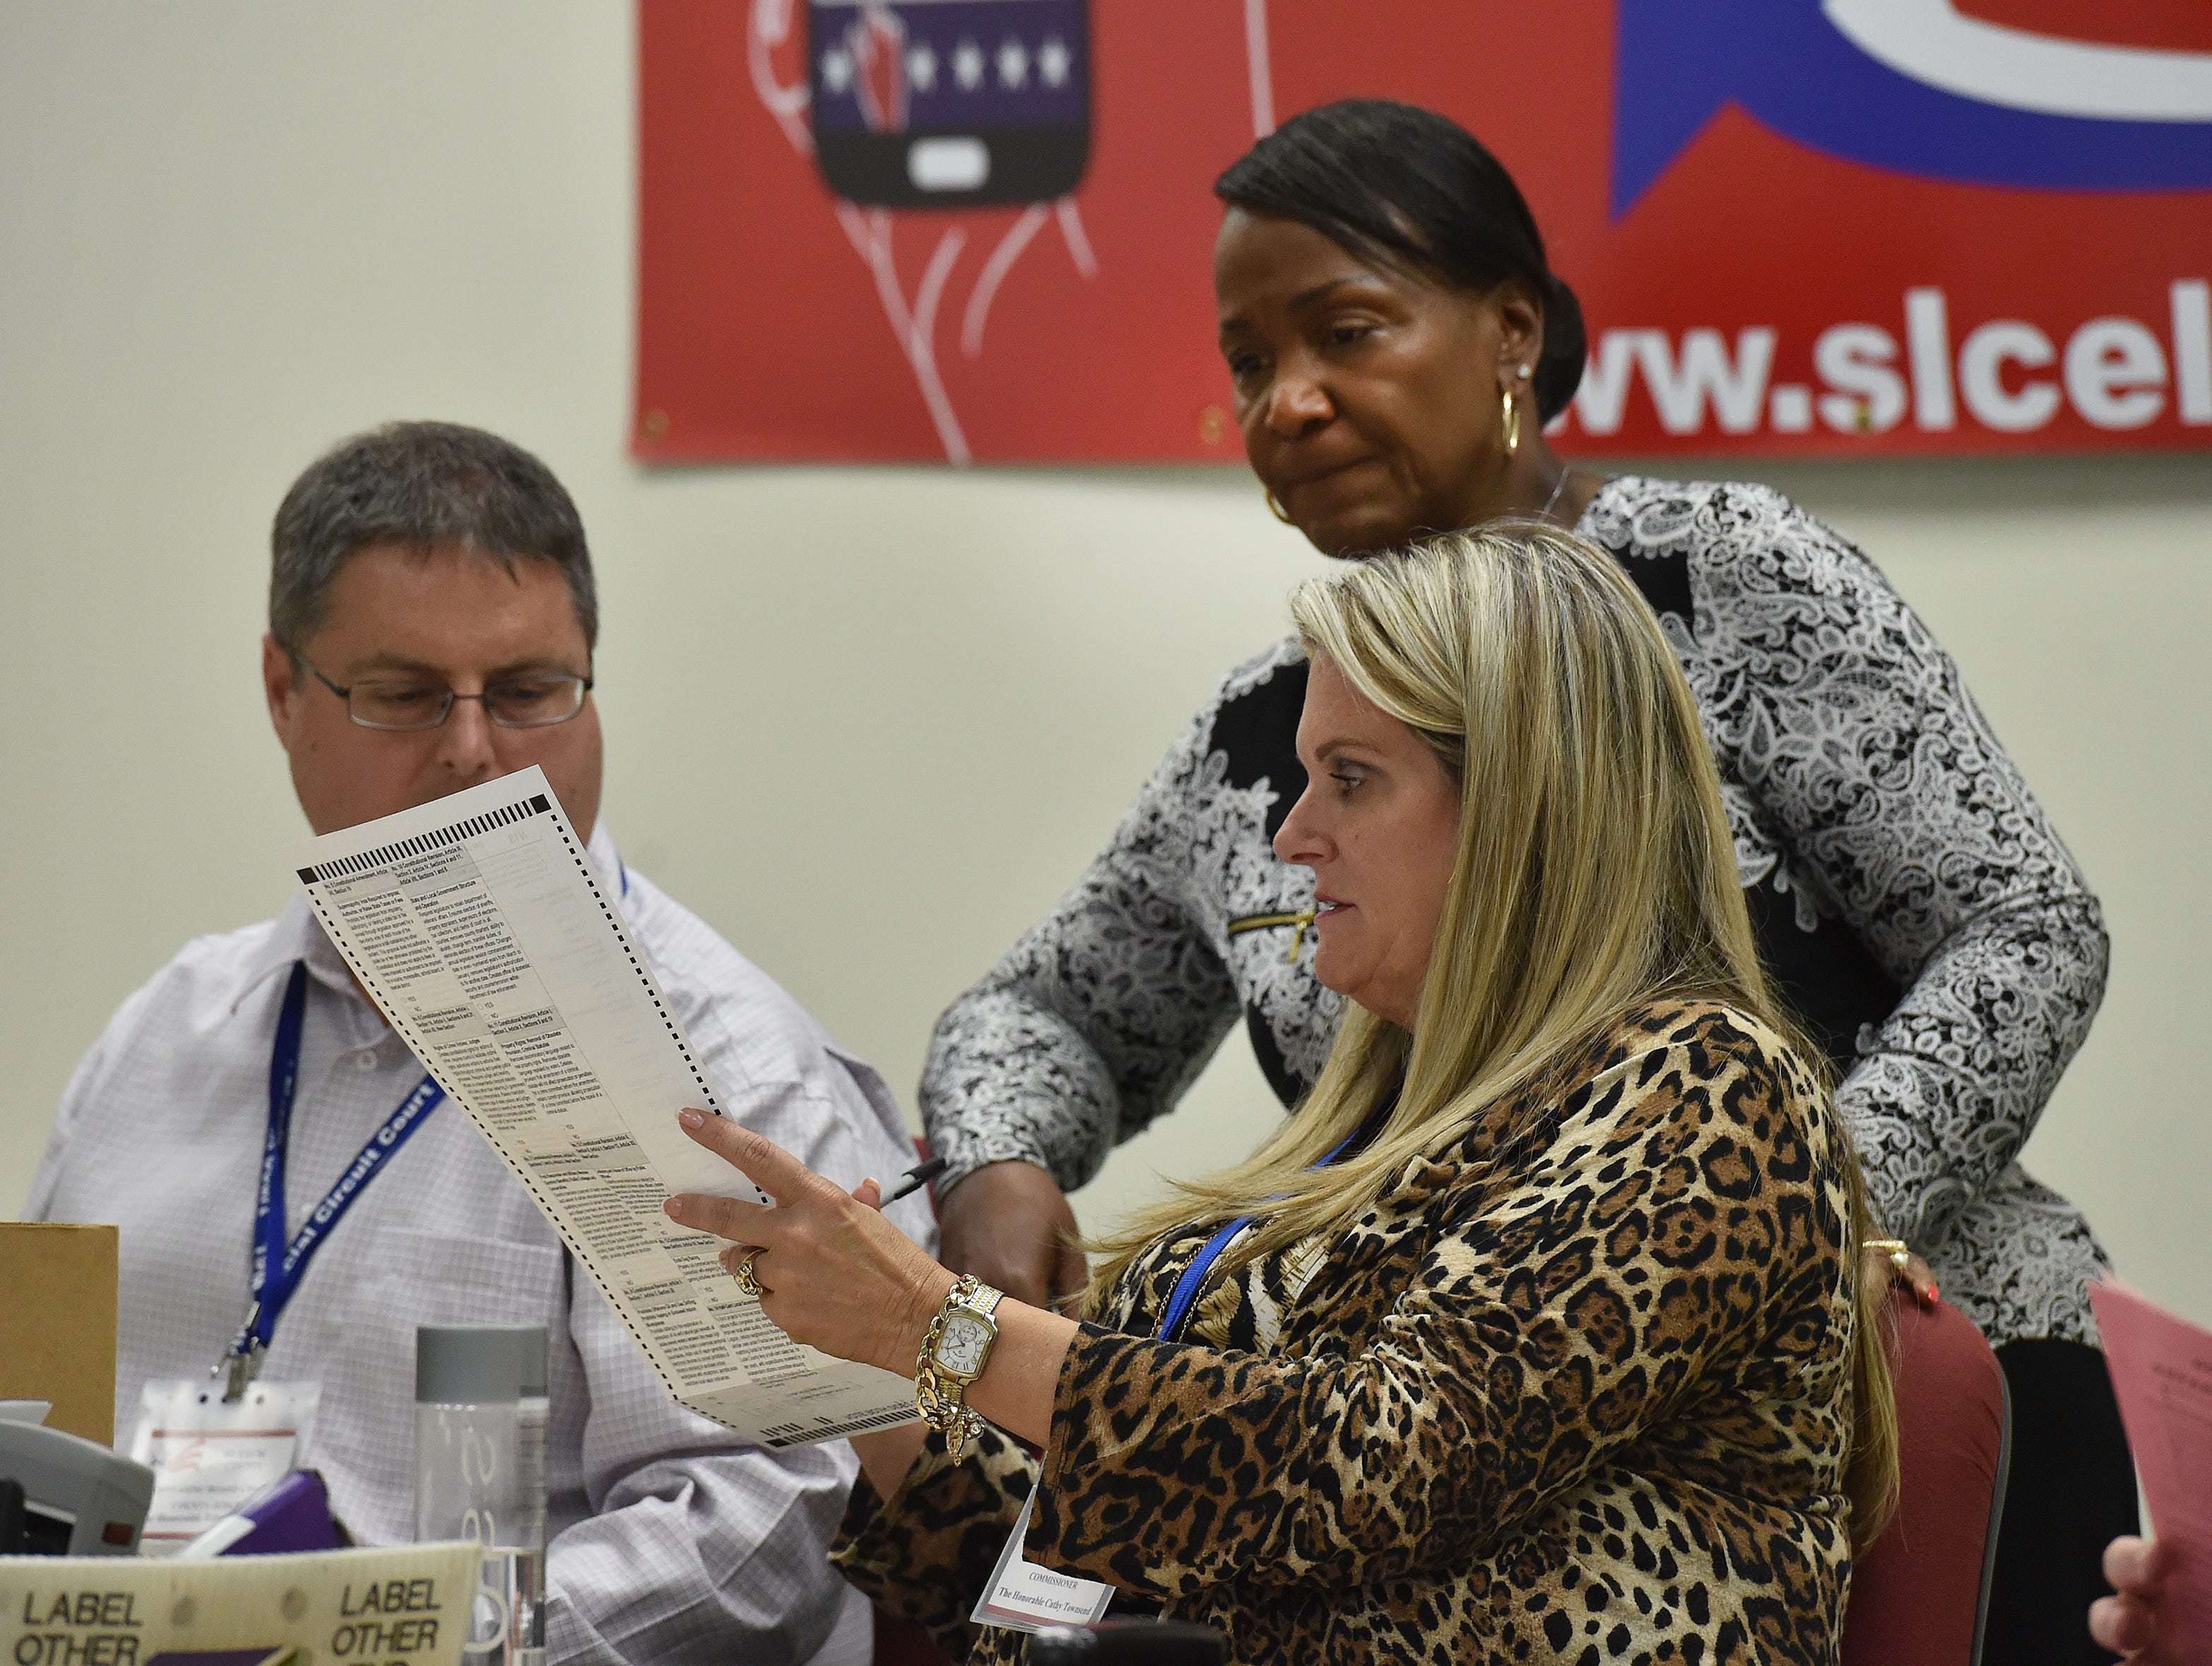 Gertrude Walker (top), Supervisor of Elections for St. Lucie County, looks over an accepted ballot with canvassing board members County Judge Edmond Alonzo (left) and St. Lucie County Commissioner Cathy Townsend as they sort through provisional ballots on Thursday, Nov. 8, 2018, at their office in Fort Pierce. Out of 122 provisional ballots, 42 were accepted by the canvassing board, according to Gertrude Walker.